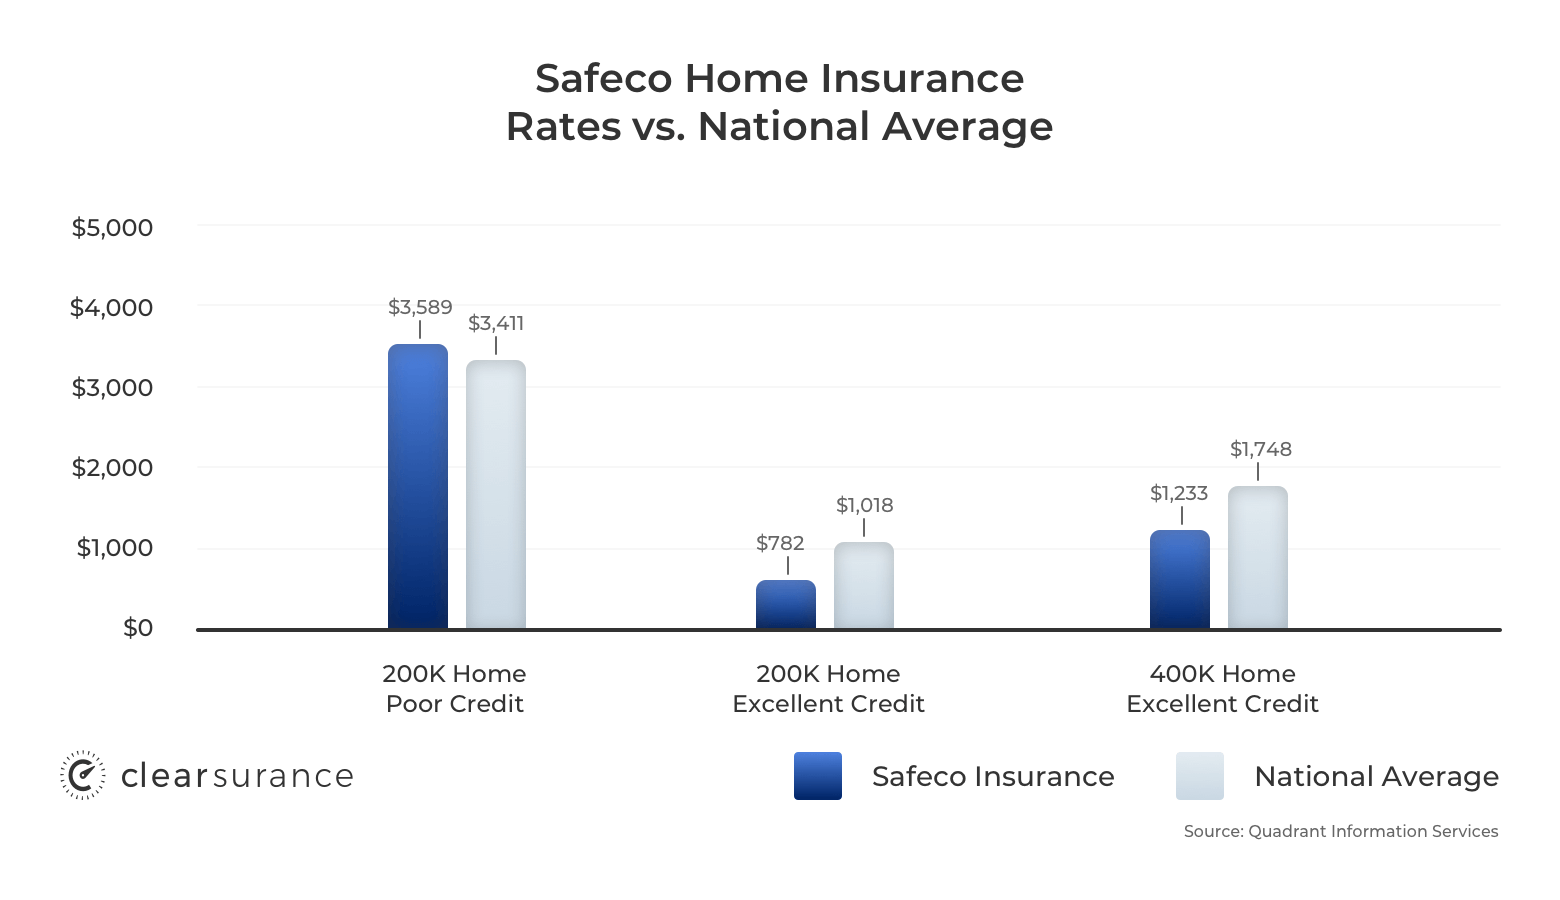 Safeco homeowners insurance rates vs the national average - examples include a 200K home with poor credit, 200K home with excellent credit and a 400K home with excellent credit